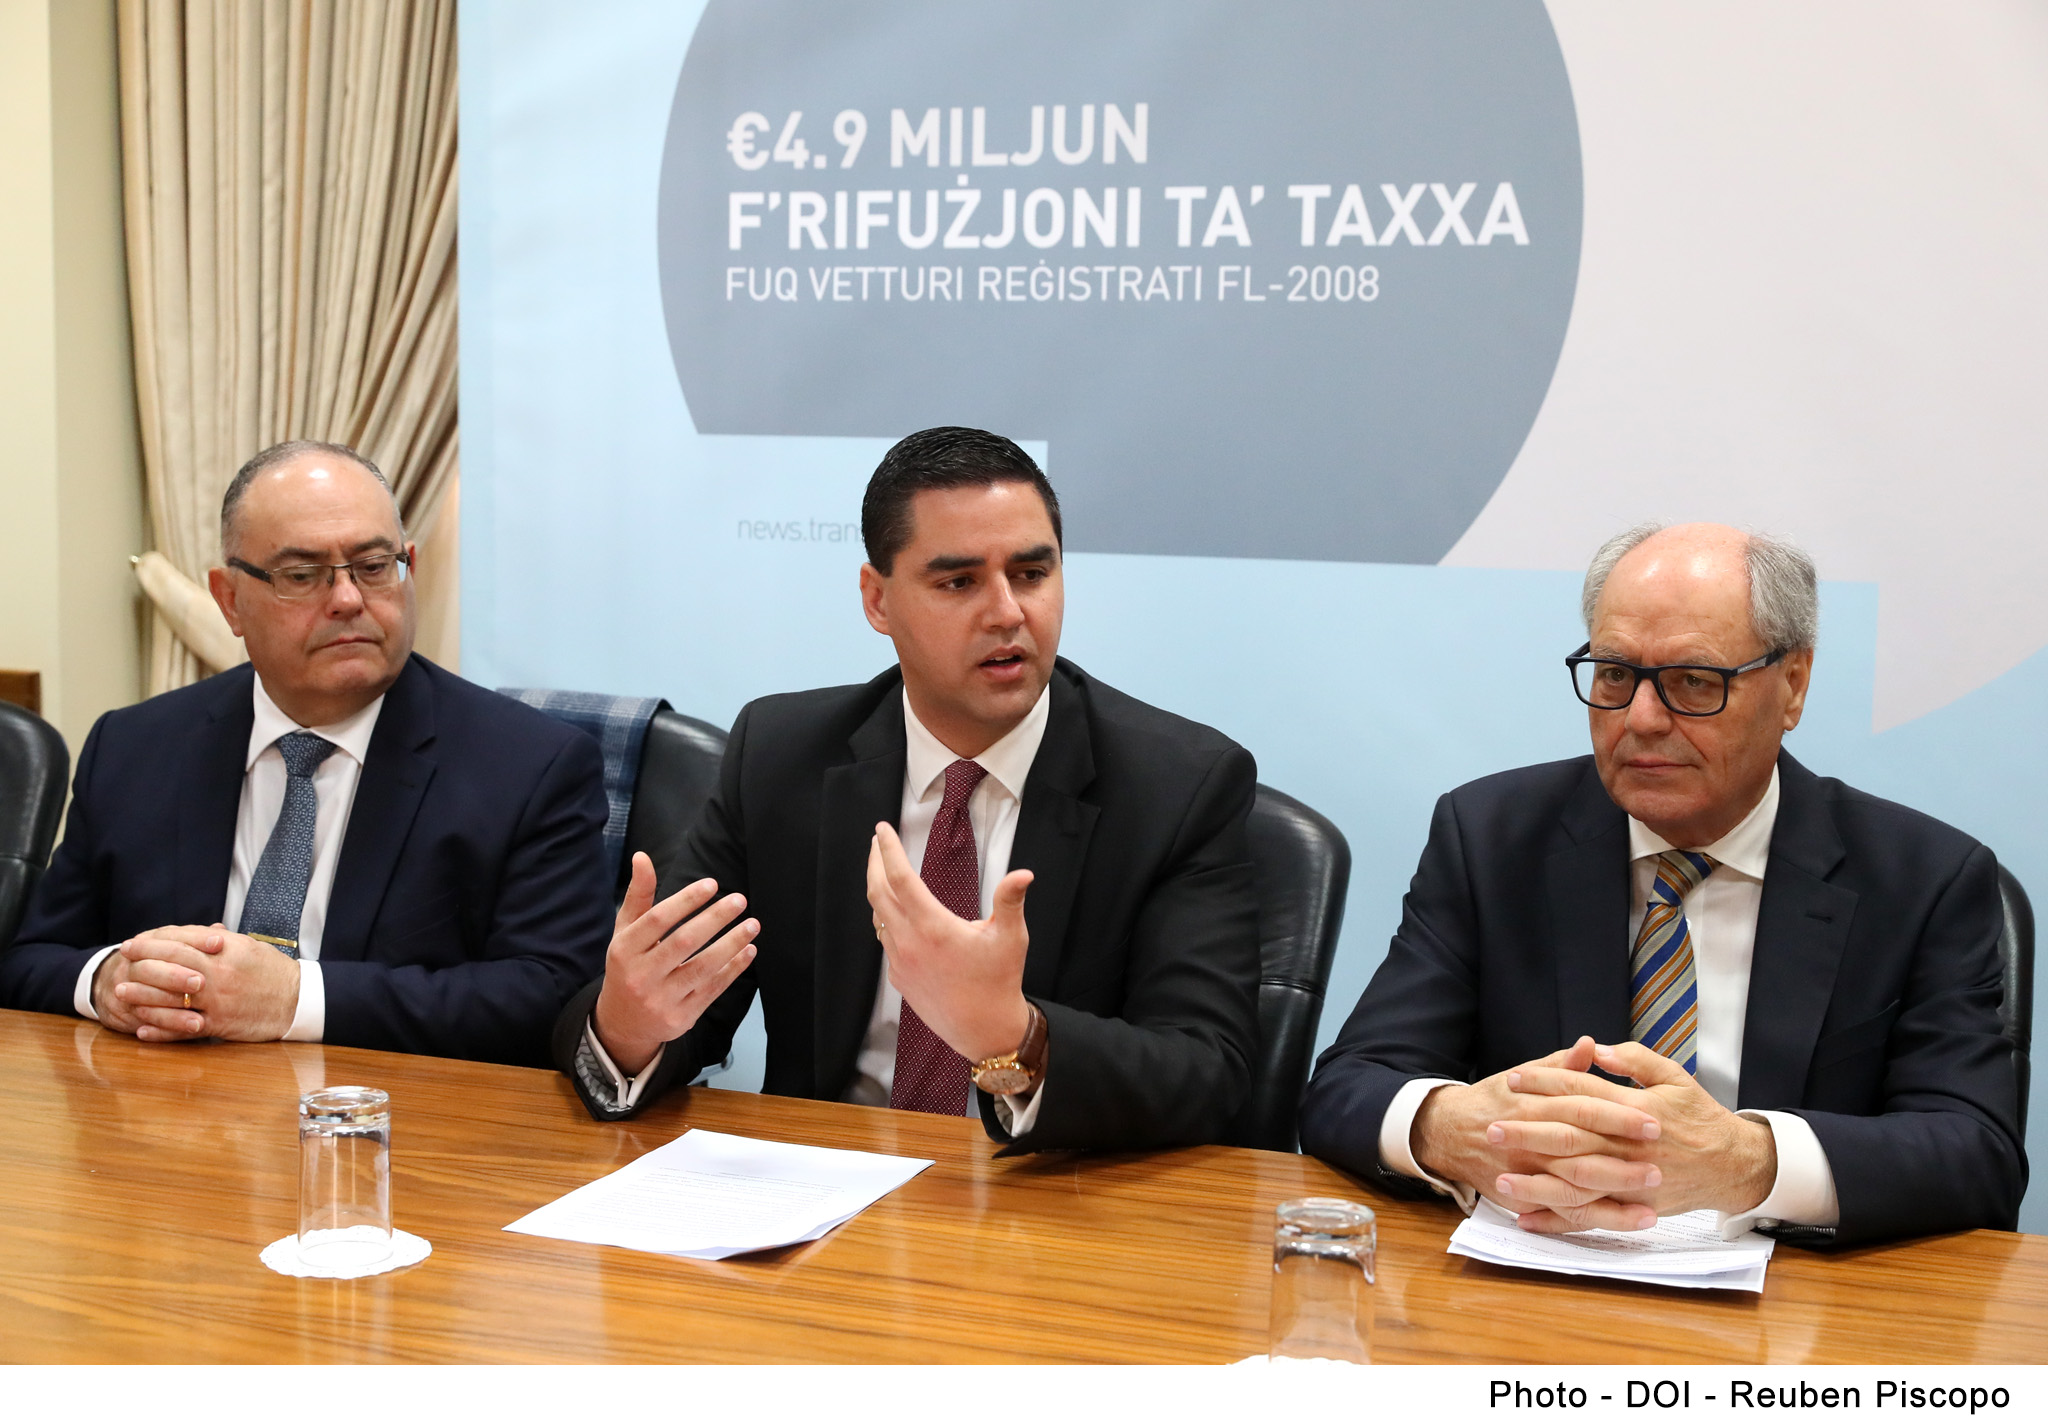 PRESS RELEASE BY THE MINISTRY FOR FINANCE AND BY THE MINISTRY FOR TRANSPORT, INFRASTRUCTURE AND CAPITAL PROJECTS: €23.6 million given back to almost 29,000 vehicle owners for extra tax charged during years 2004 and 2008